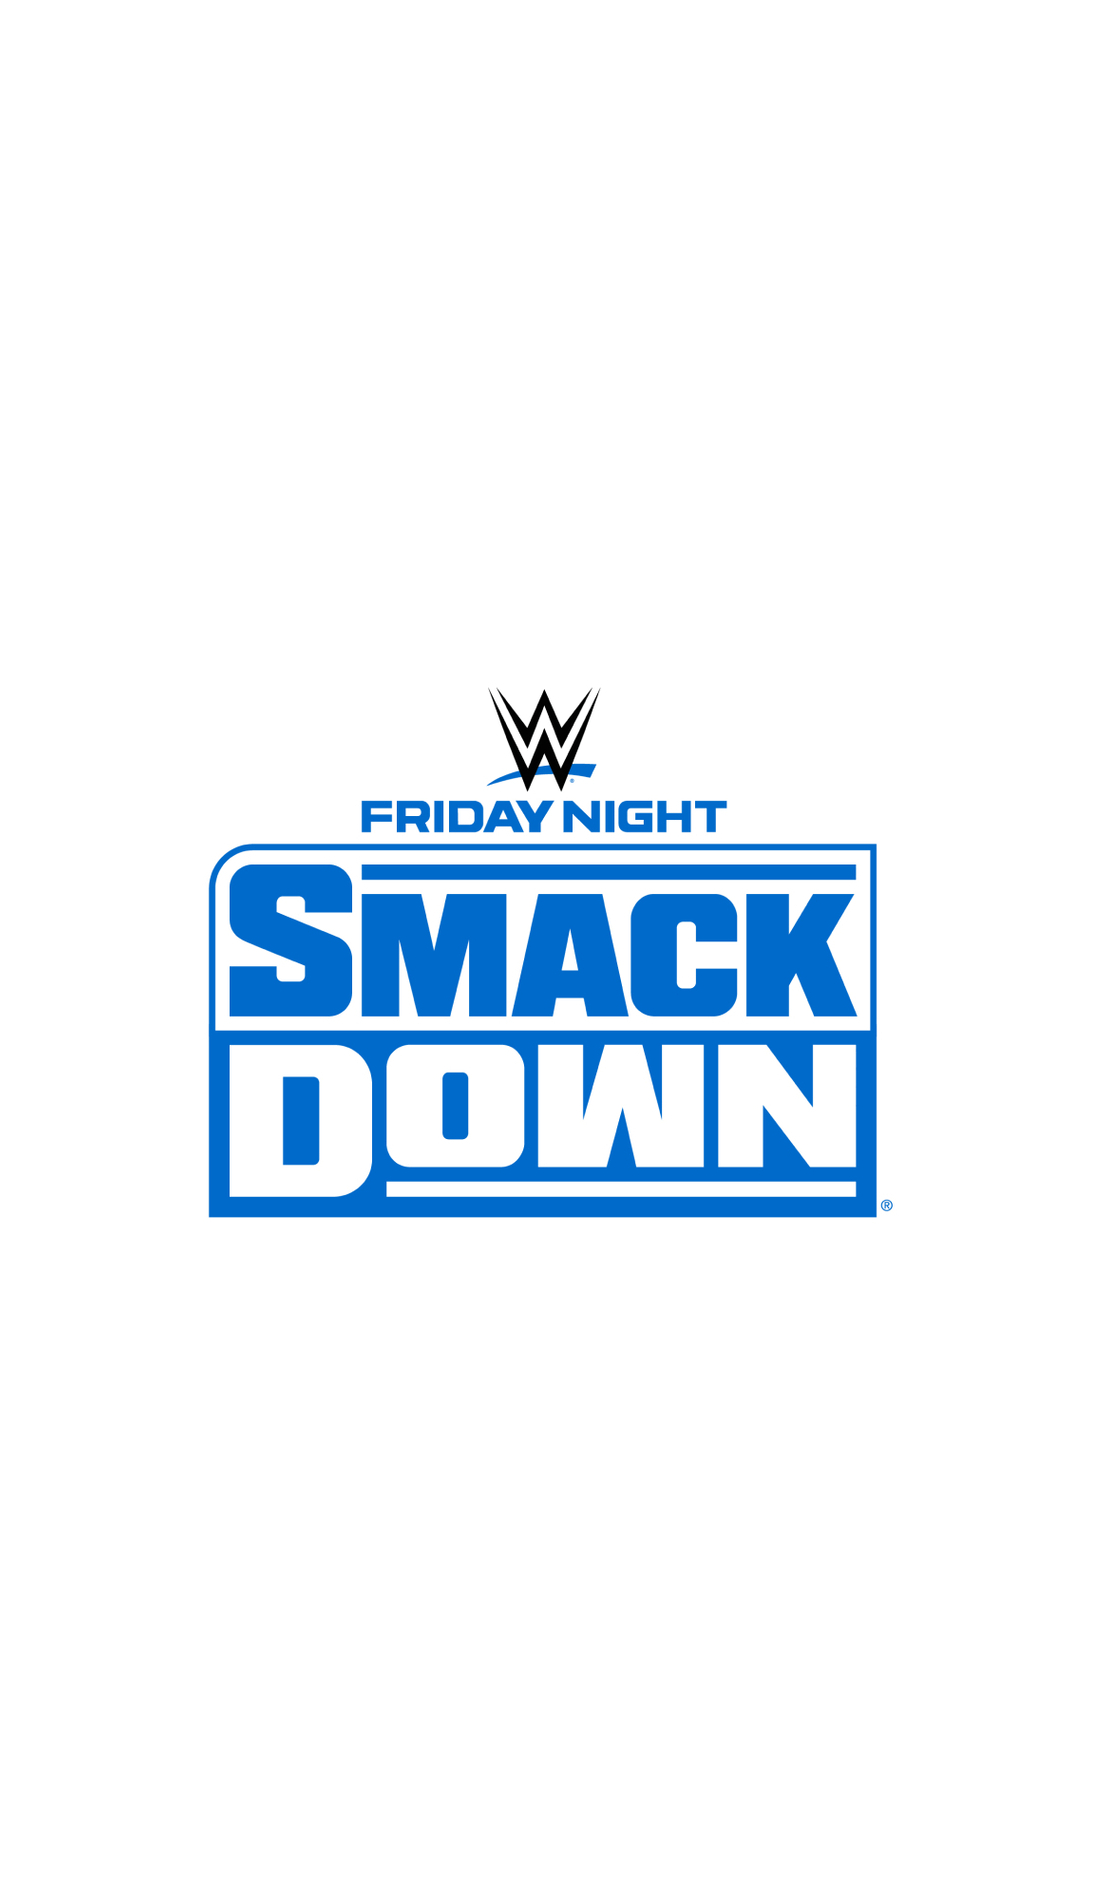 A WWE Smackdown live event